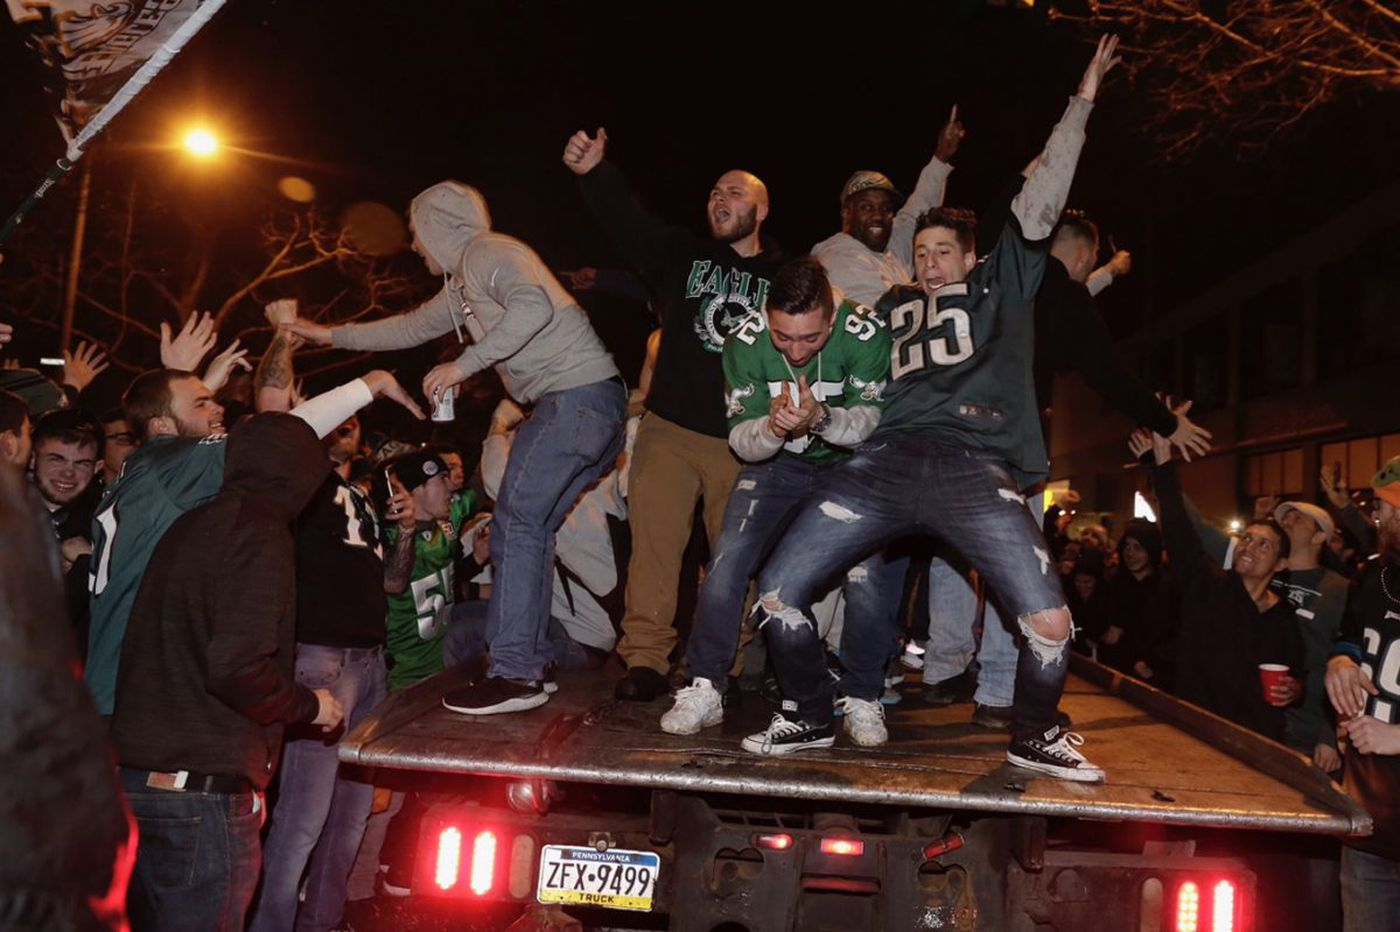 Legal gambling on the Super Bowl? Maybe next year, Philly